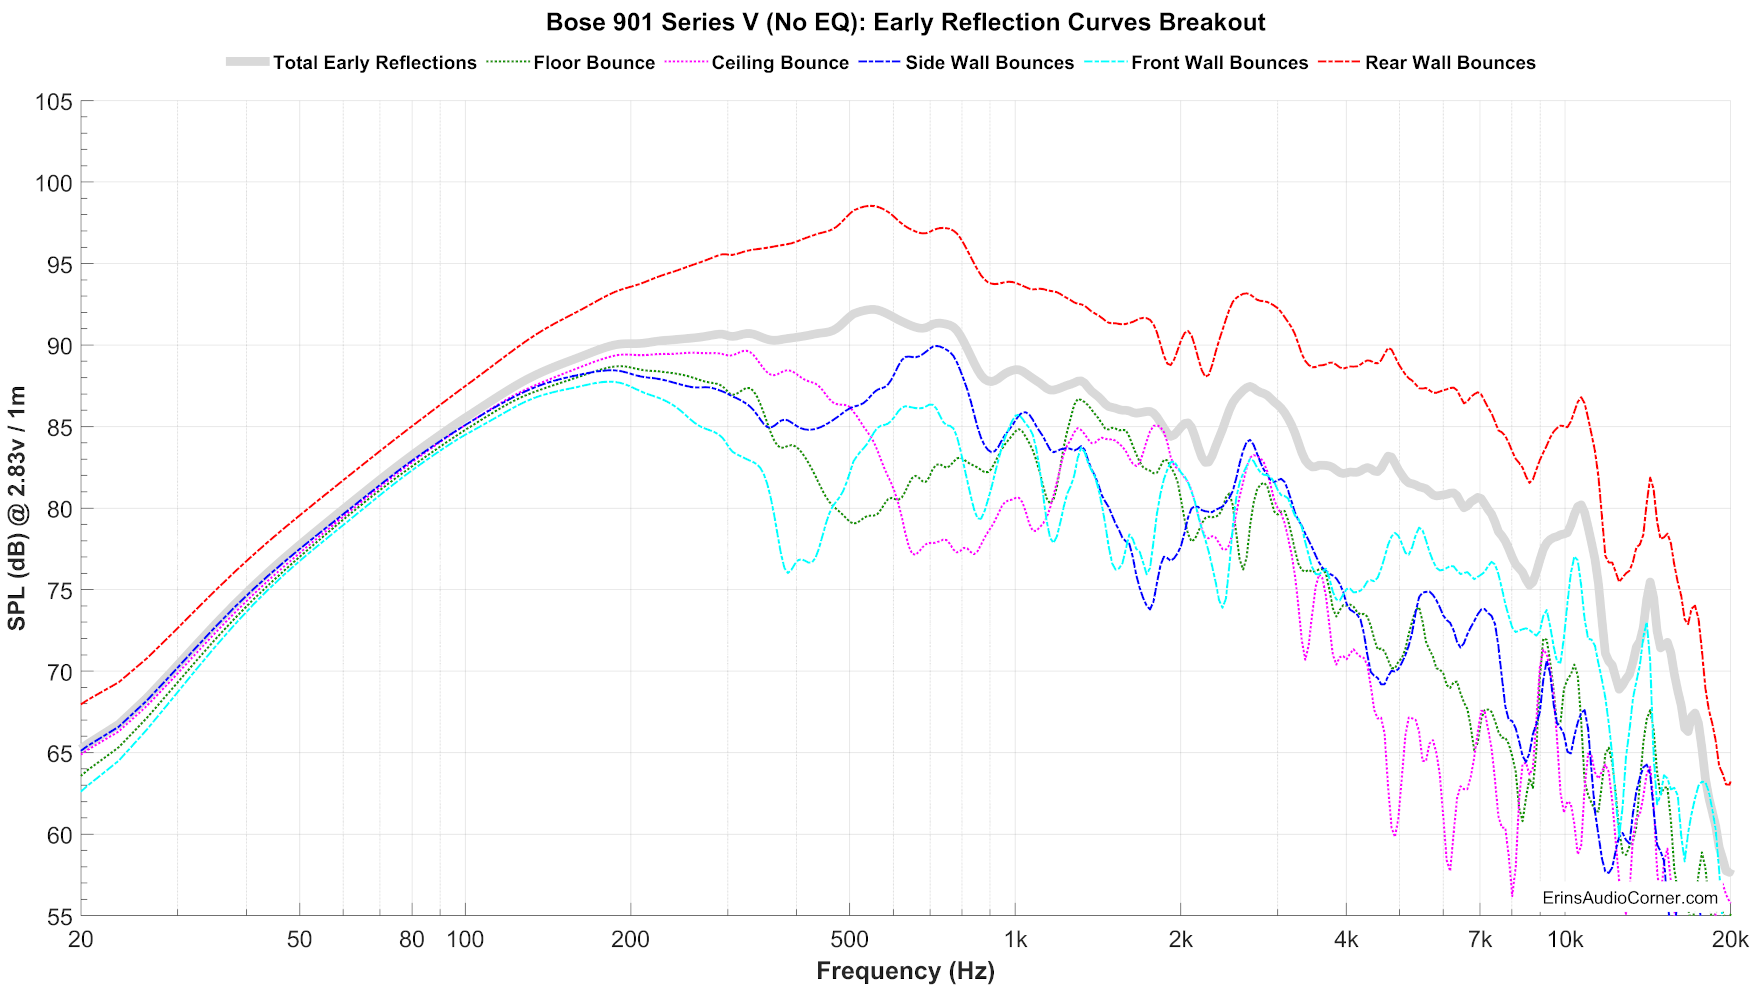 Bose%20901%20Series%20V%20(No%20EQ)_Early_Reflections_Breakout.png